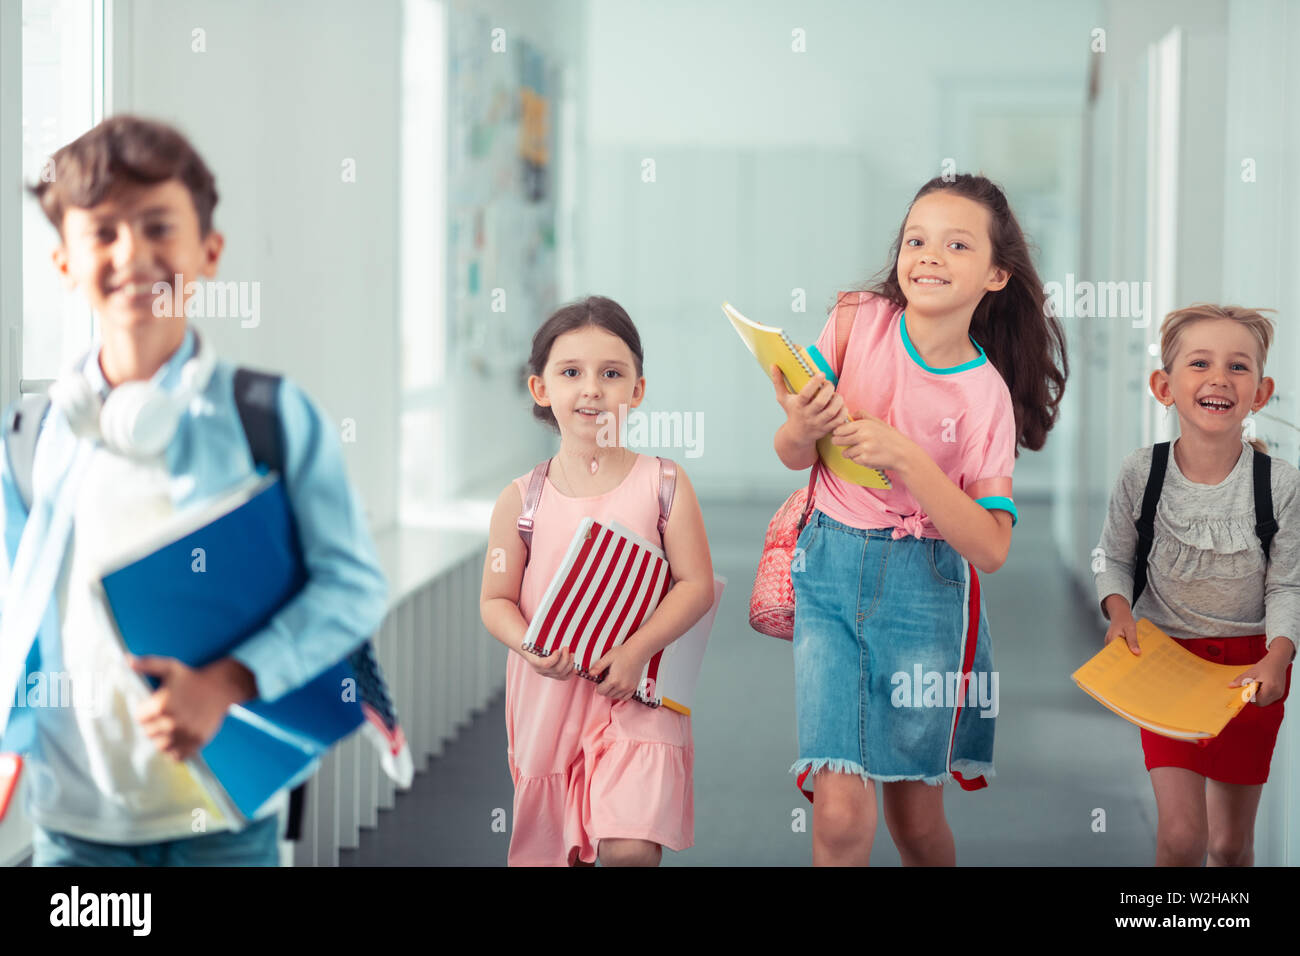 Girls and boy feeling happy going home from school - Stock Image